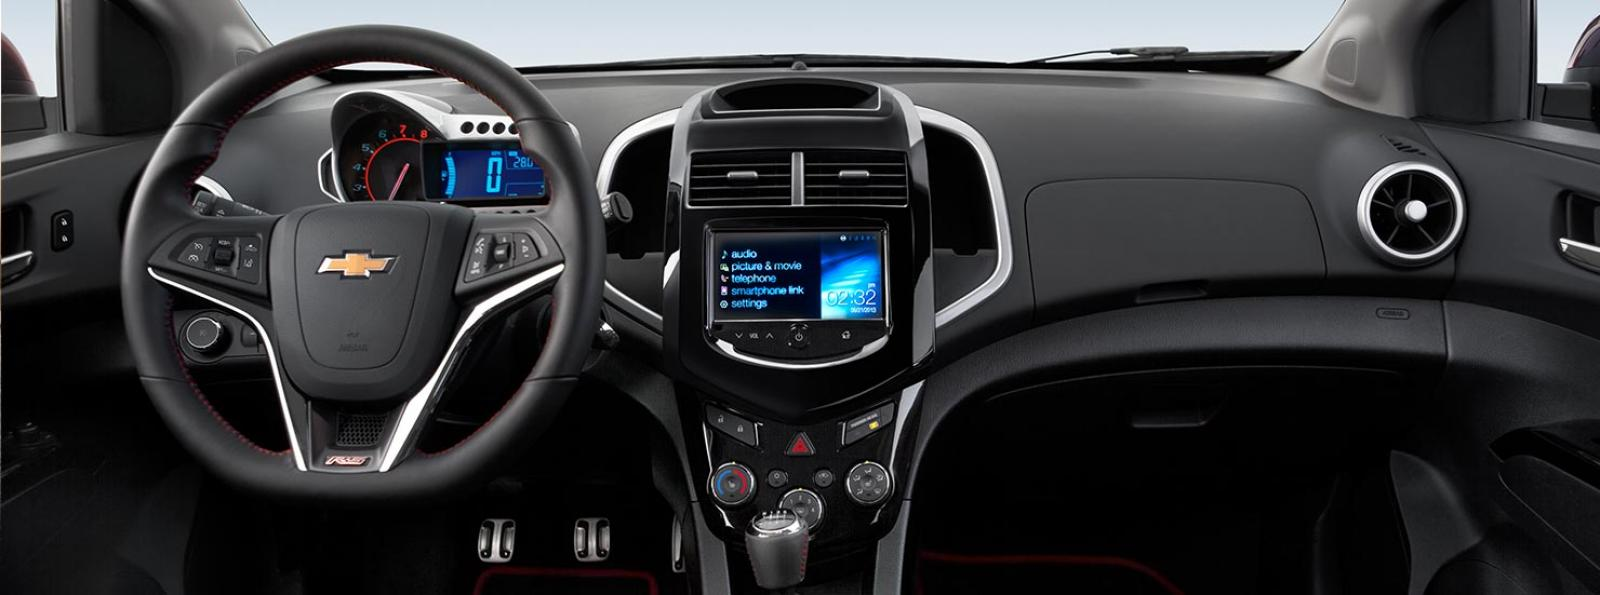 2015 Chevrolet Sonic - Information and photos - Zomb Drive